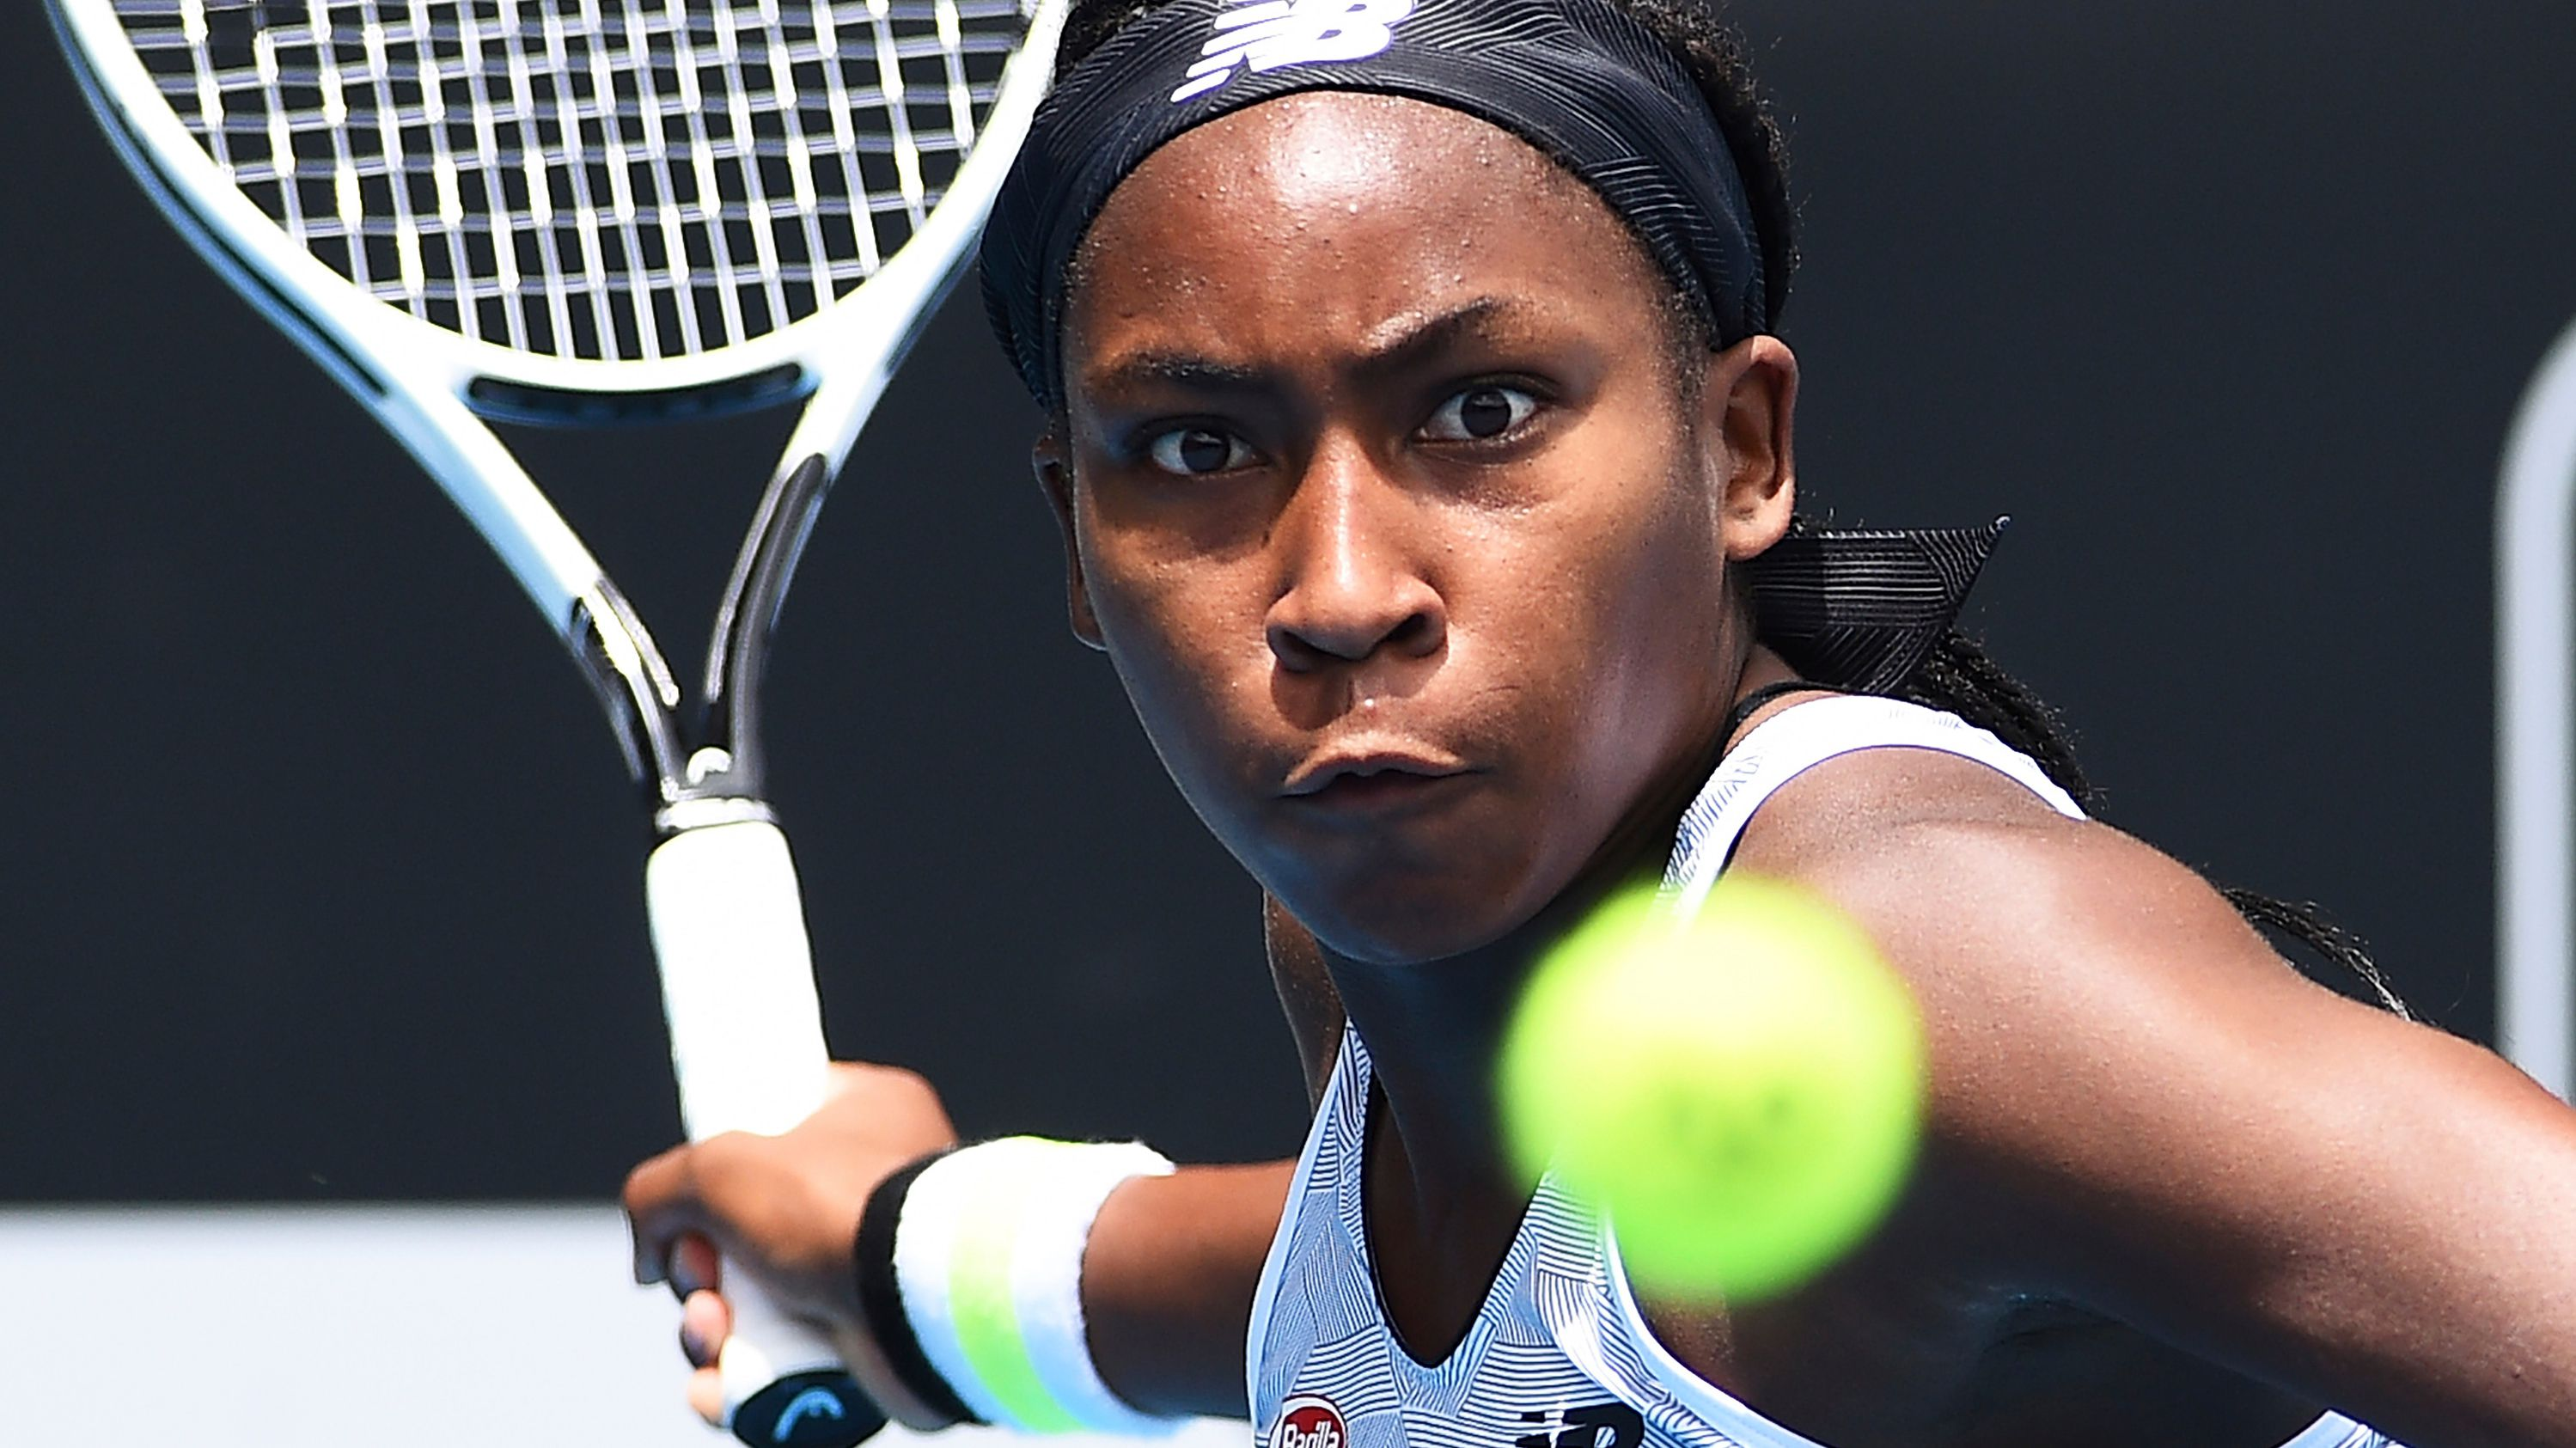 Todd Woodbridge tips repeat of Wimbledon stunner as prodigy gets horror Open draw